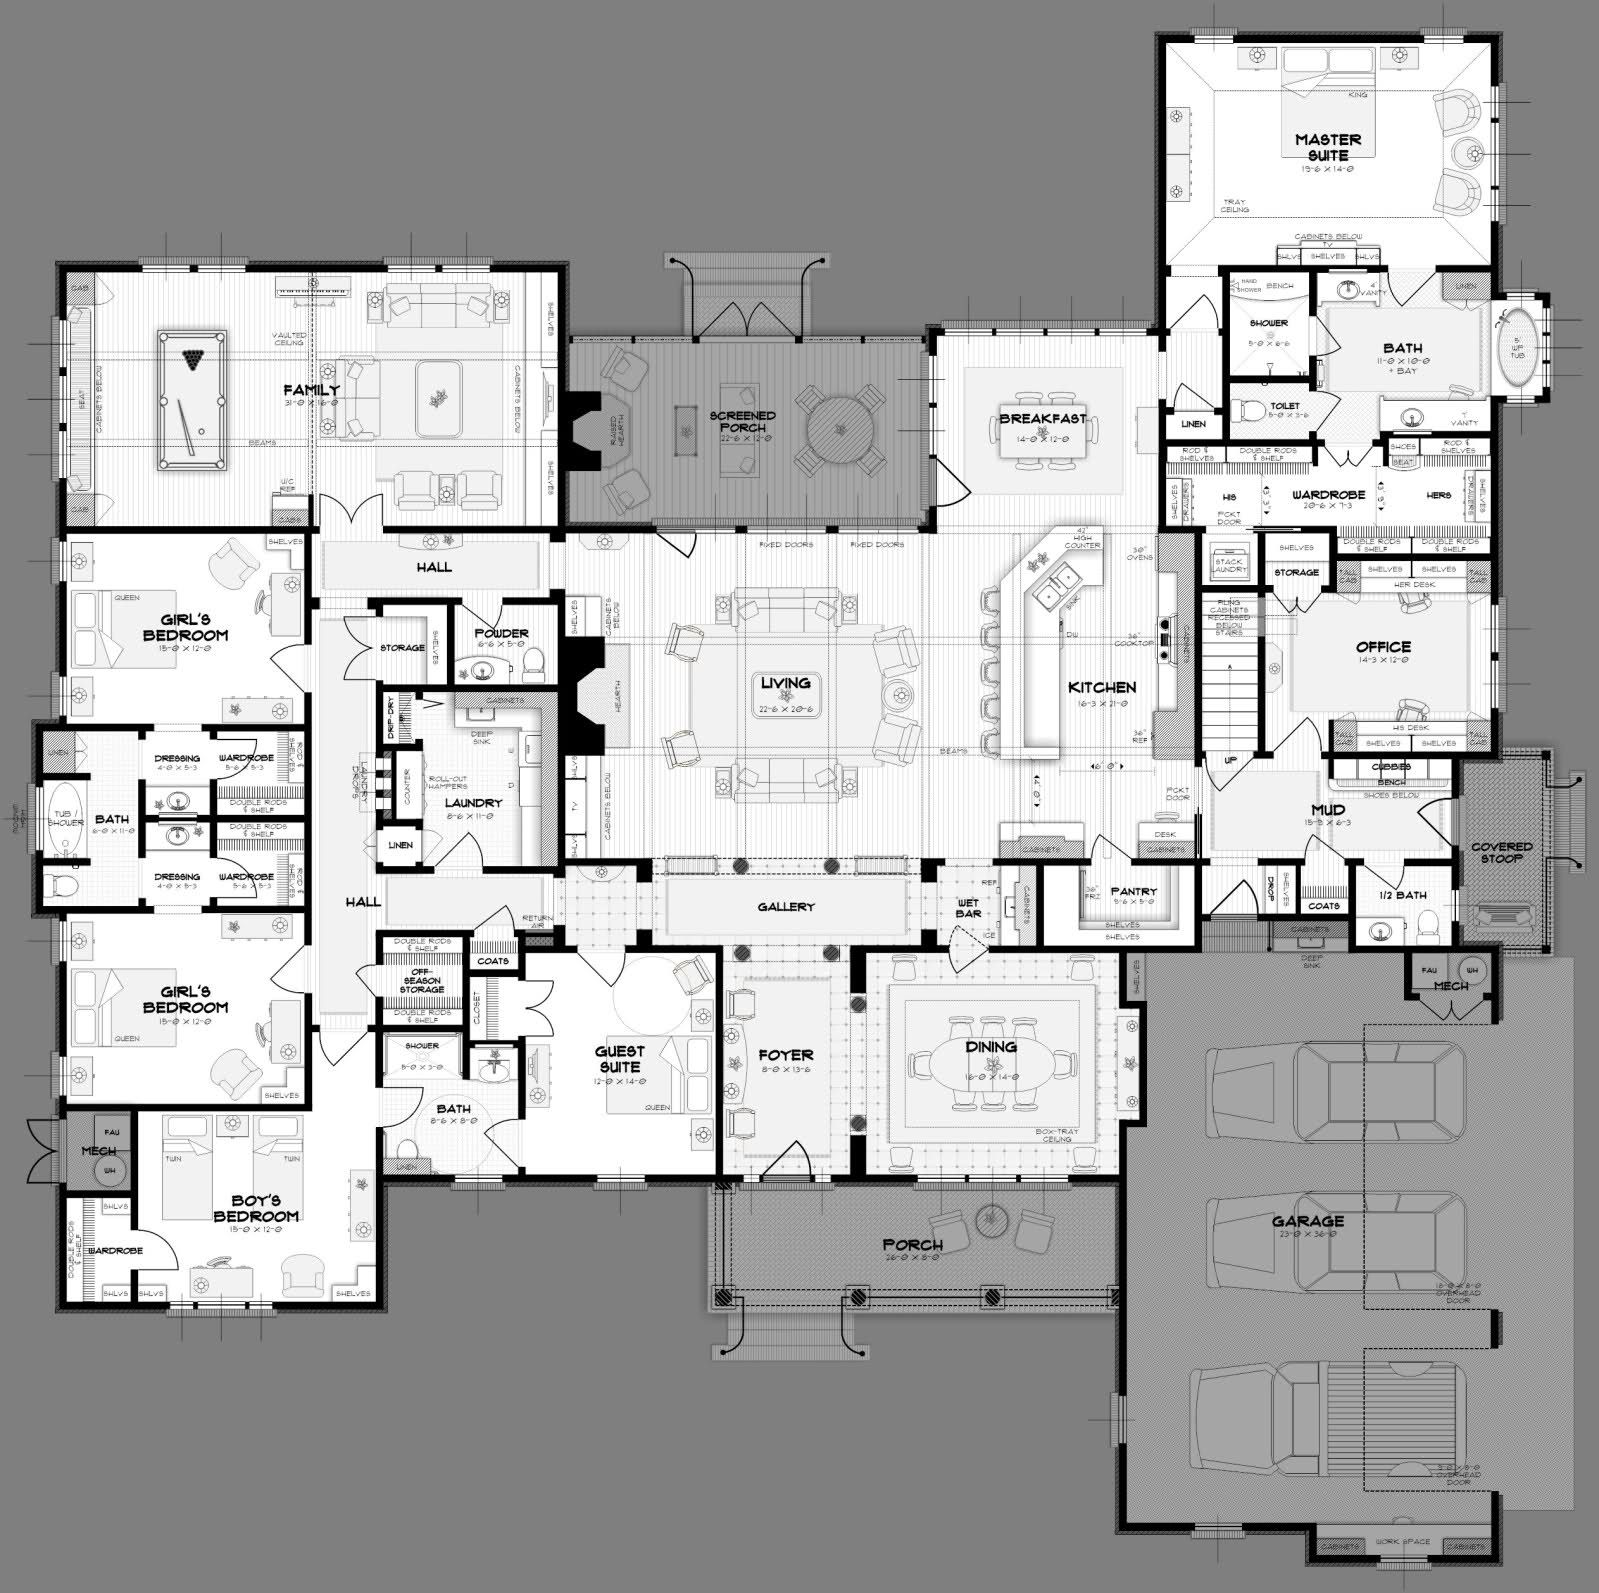 Big 5 bedroom house plans my plans help needed with Large house floor plans